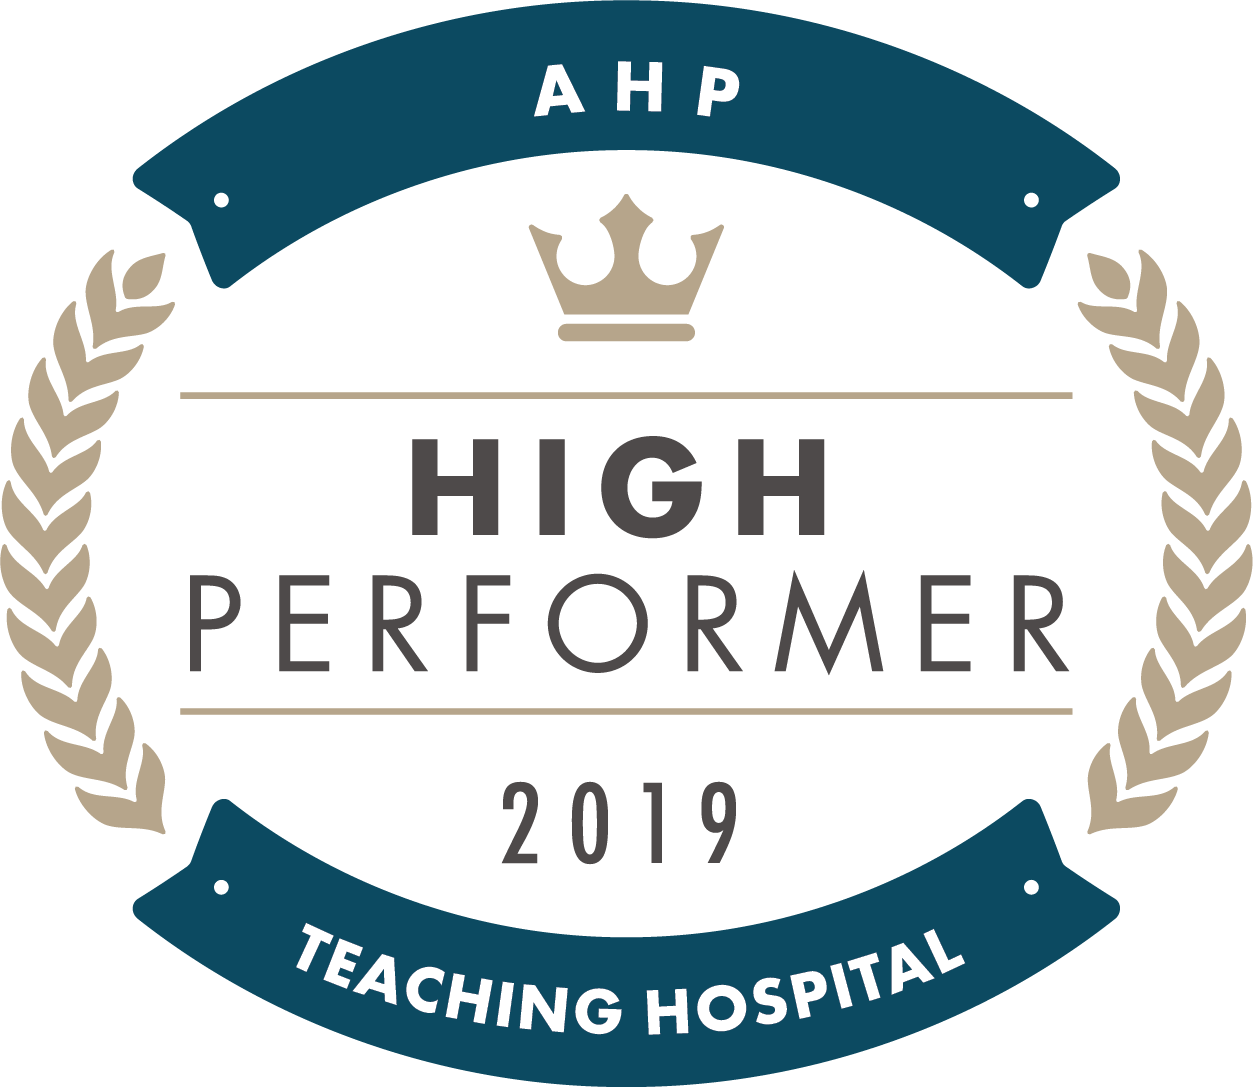 Color_2019HP Logo_TeachingHospital